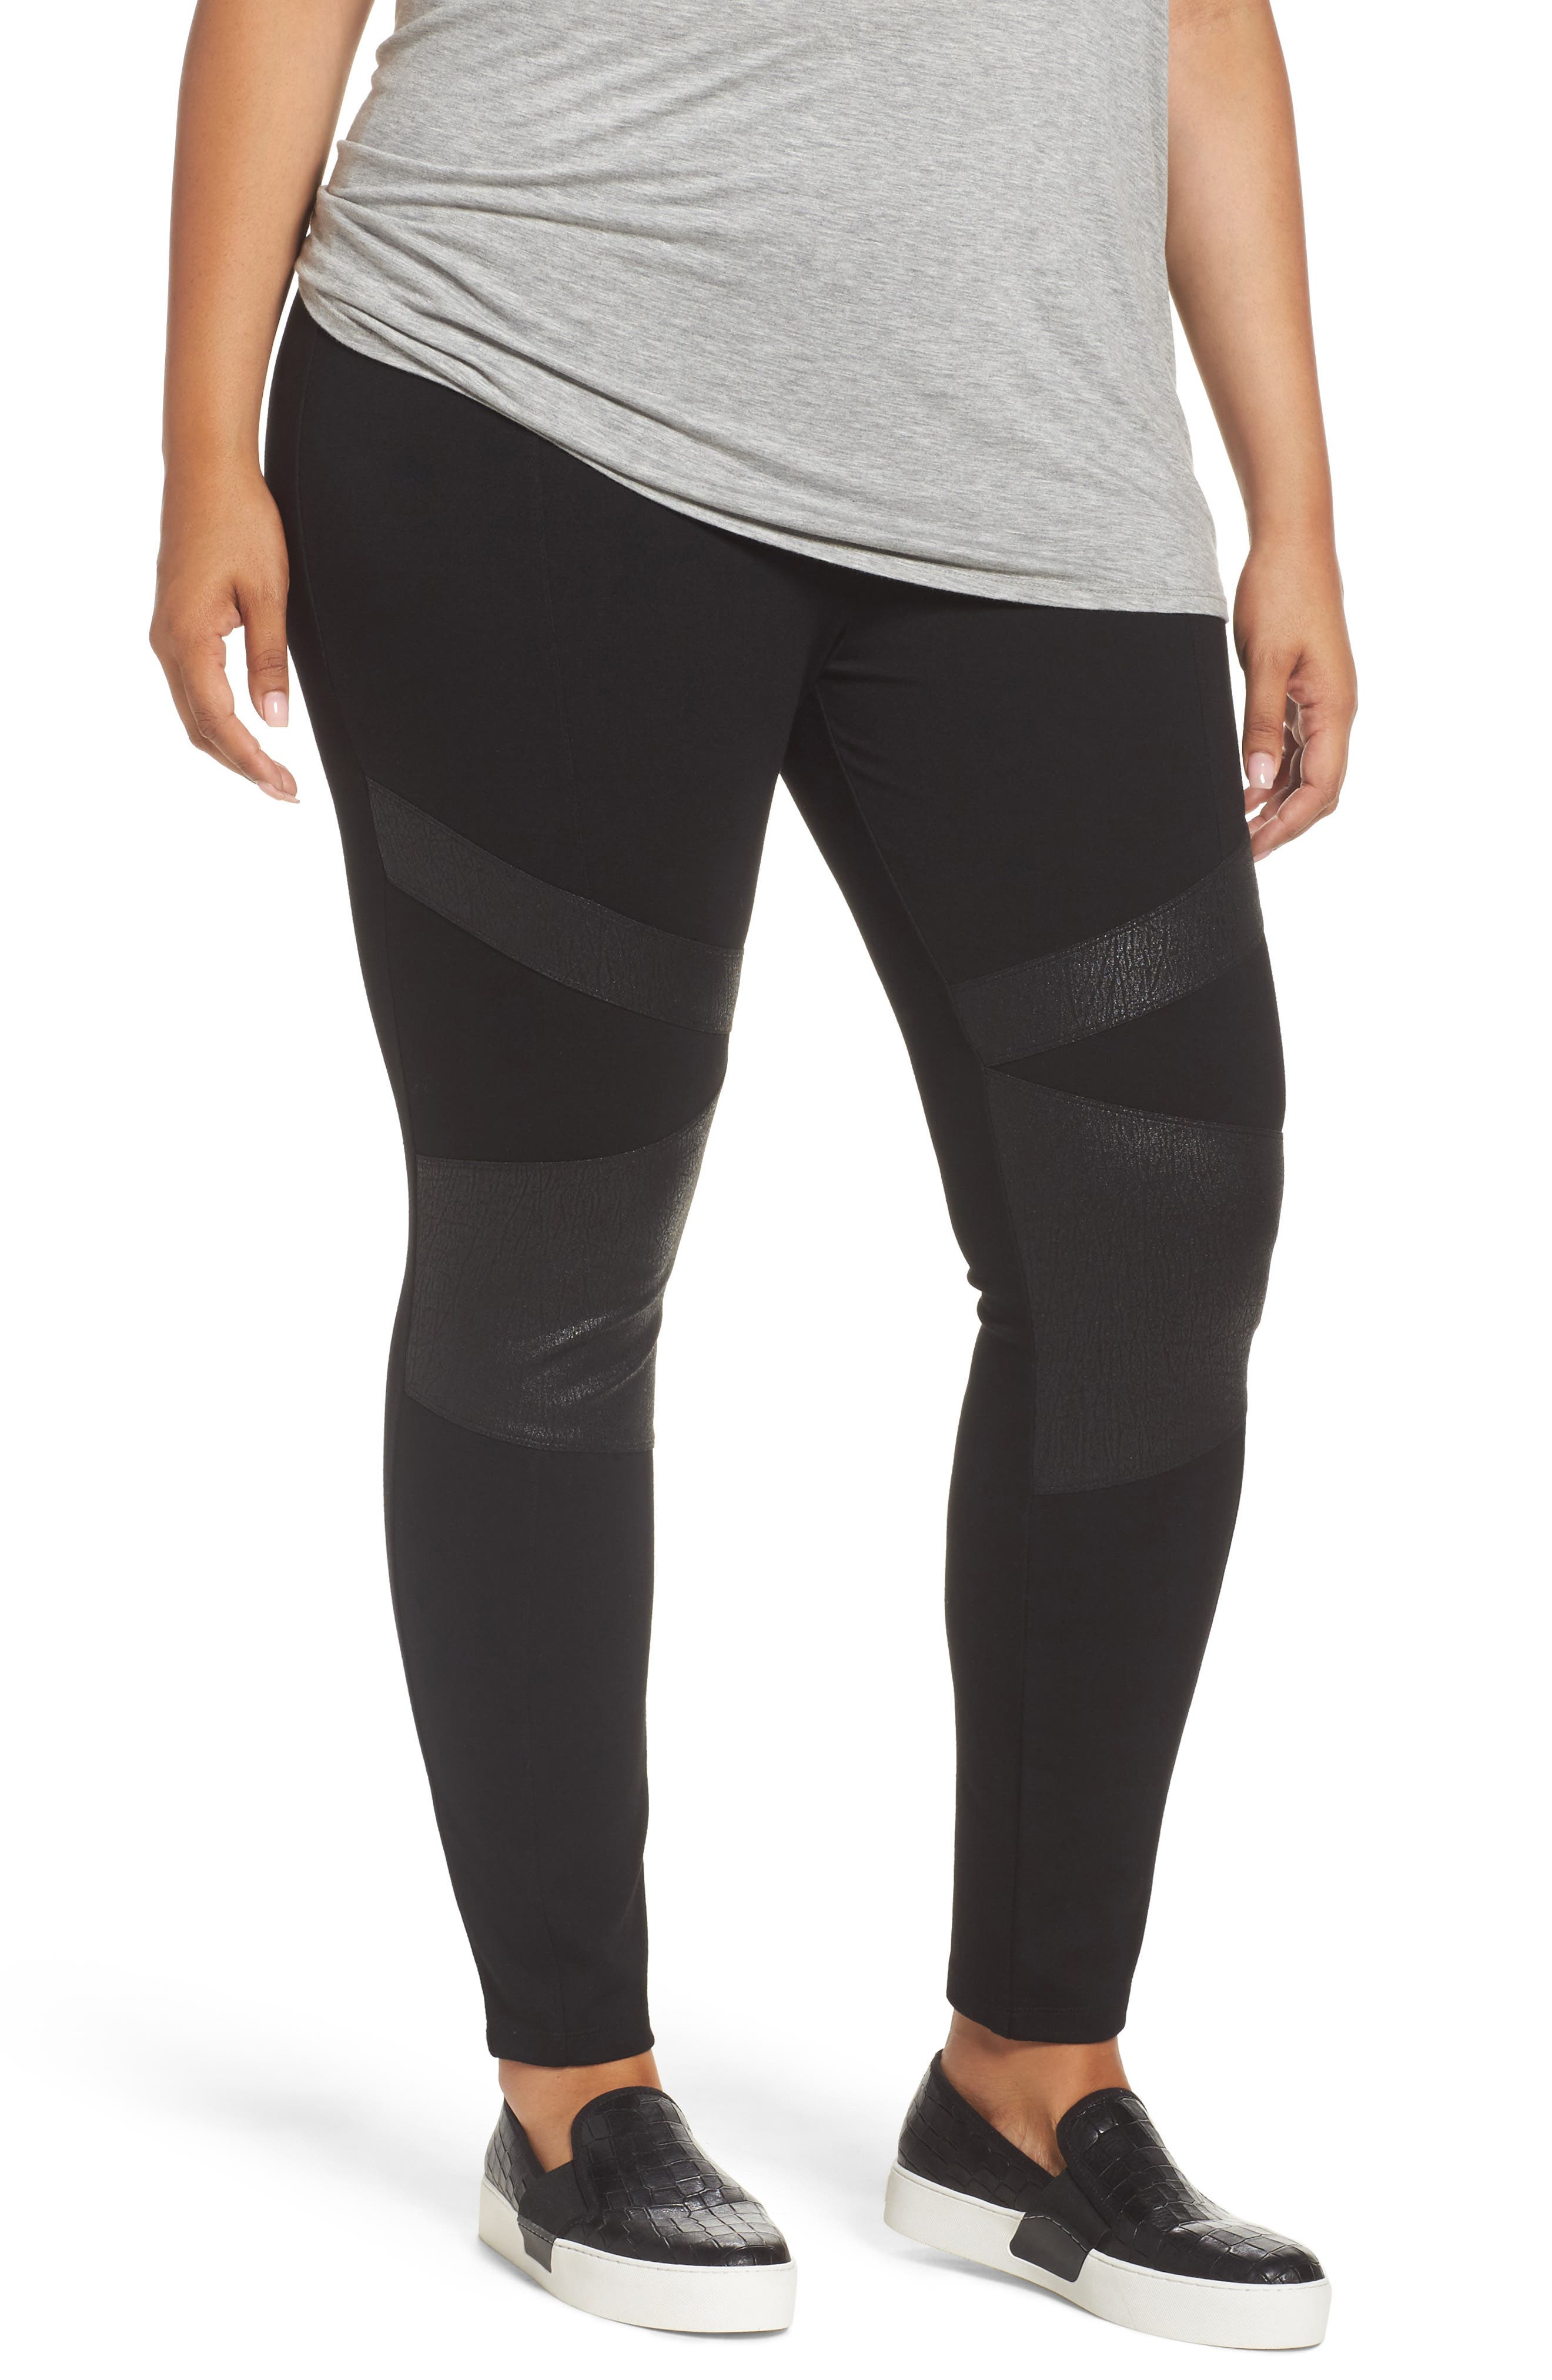 TWO BY VINCE CAMUTO,                             High Rise Lacquer Inset Moto Leggings,                             Main thumbnail 1, color,                             RICH BLACK